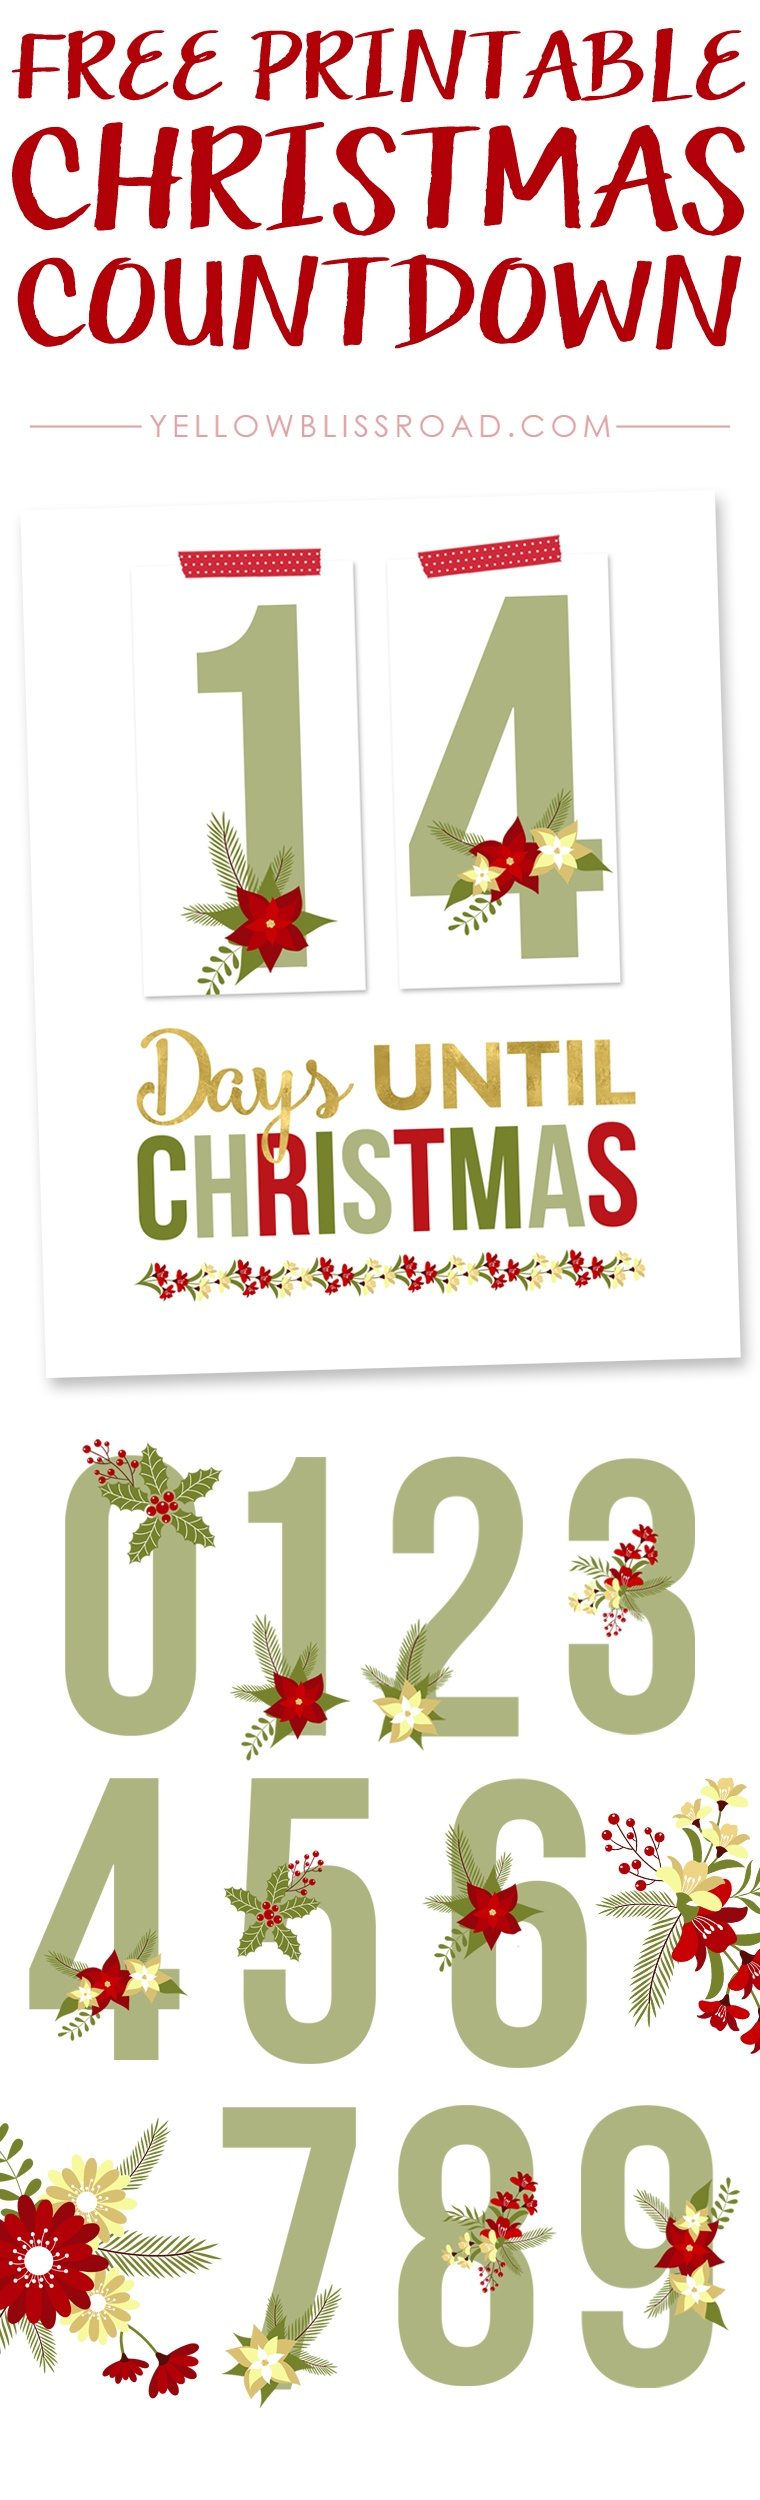 Free Printable Christmas Countdown - Yellow Bliss Road - Free Printable Christmas Photo Collage